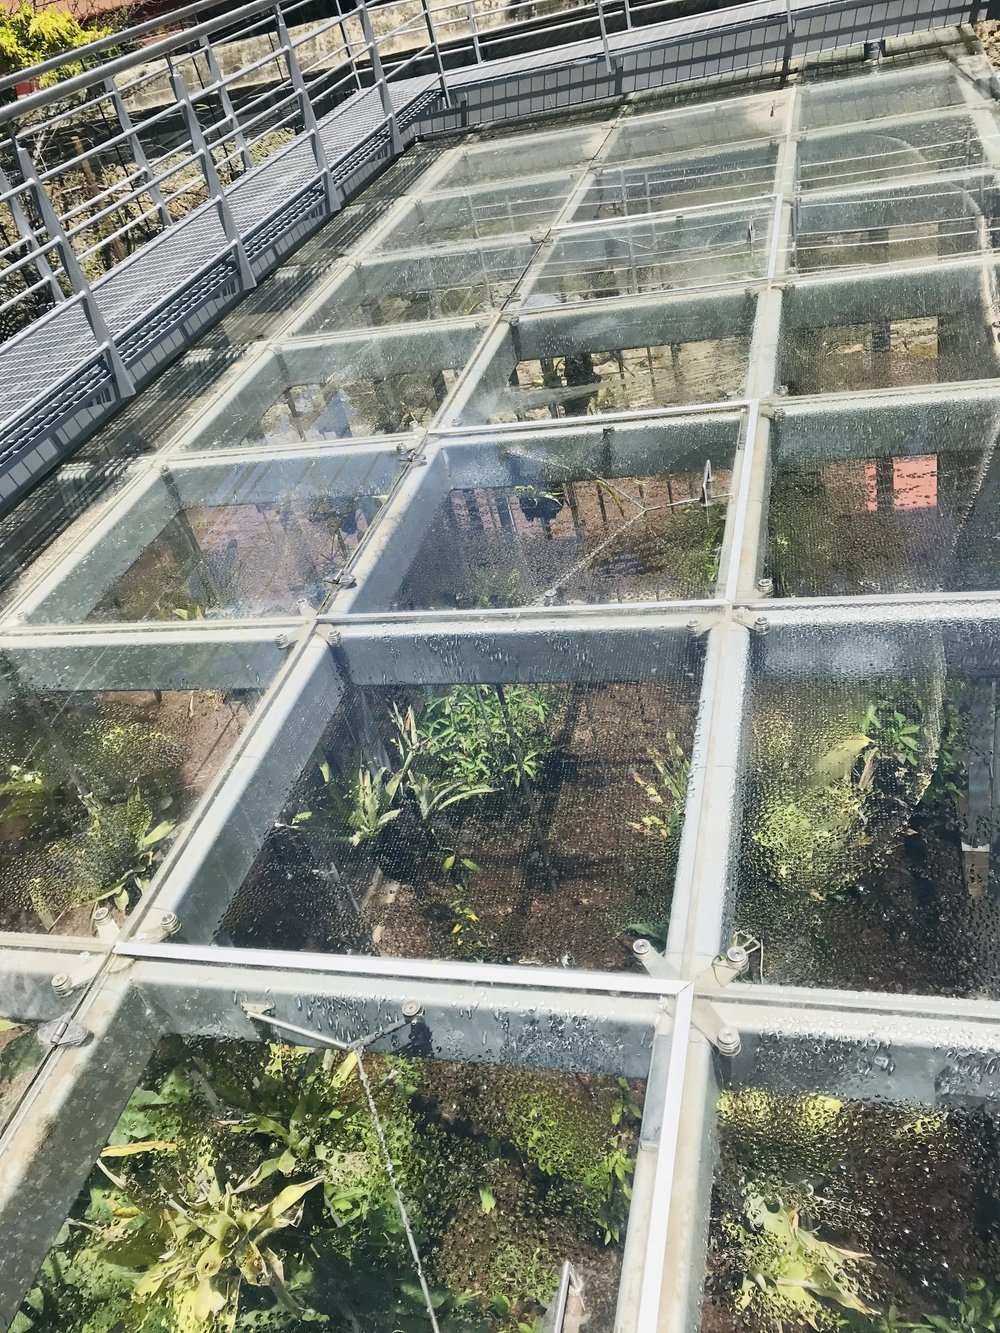 Here's a lovely glass building - it is an award-winning greenhouse in the Botanical Garden in Oaxaca.